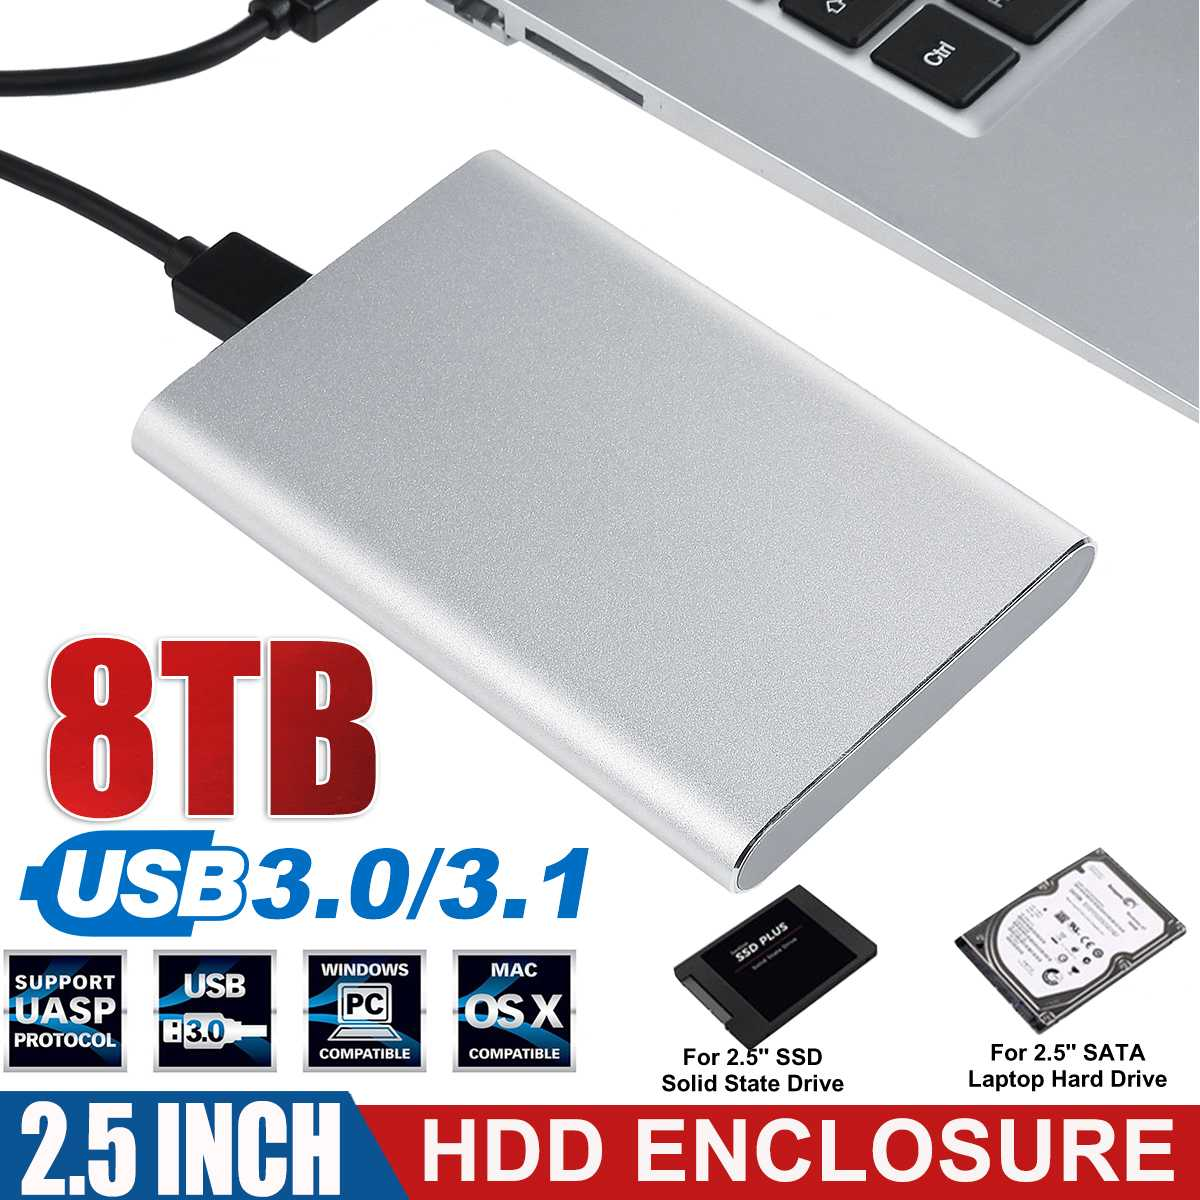 2.5 inch HDD SSD Case Sata to USB 3.0 3.1 Adapter 6 Gbps Box Hard Drive Enclosure Support 8TB HDD Di